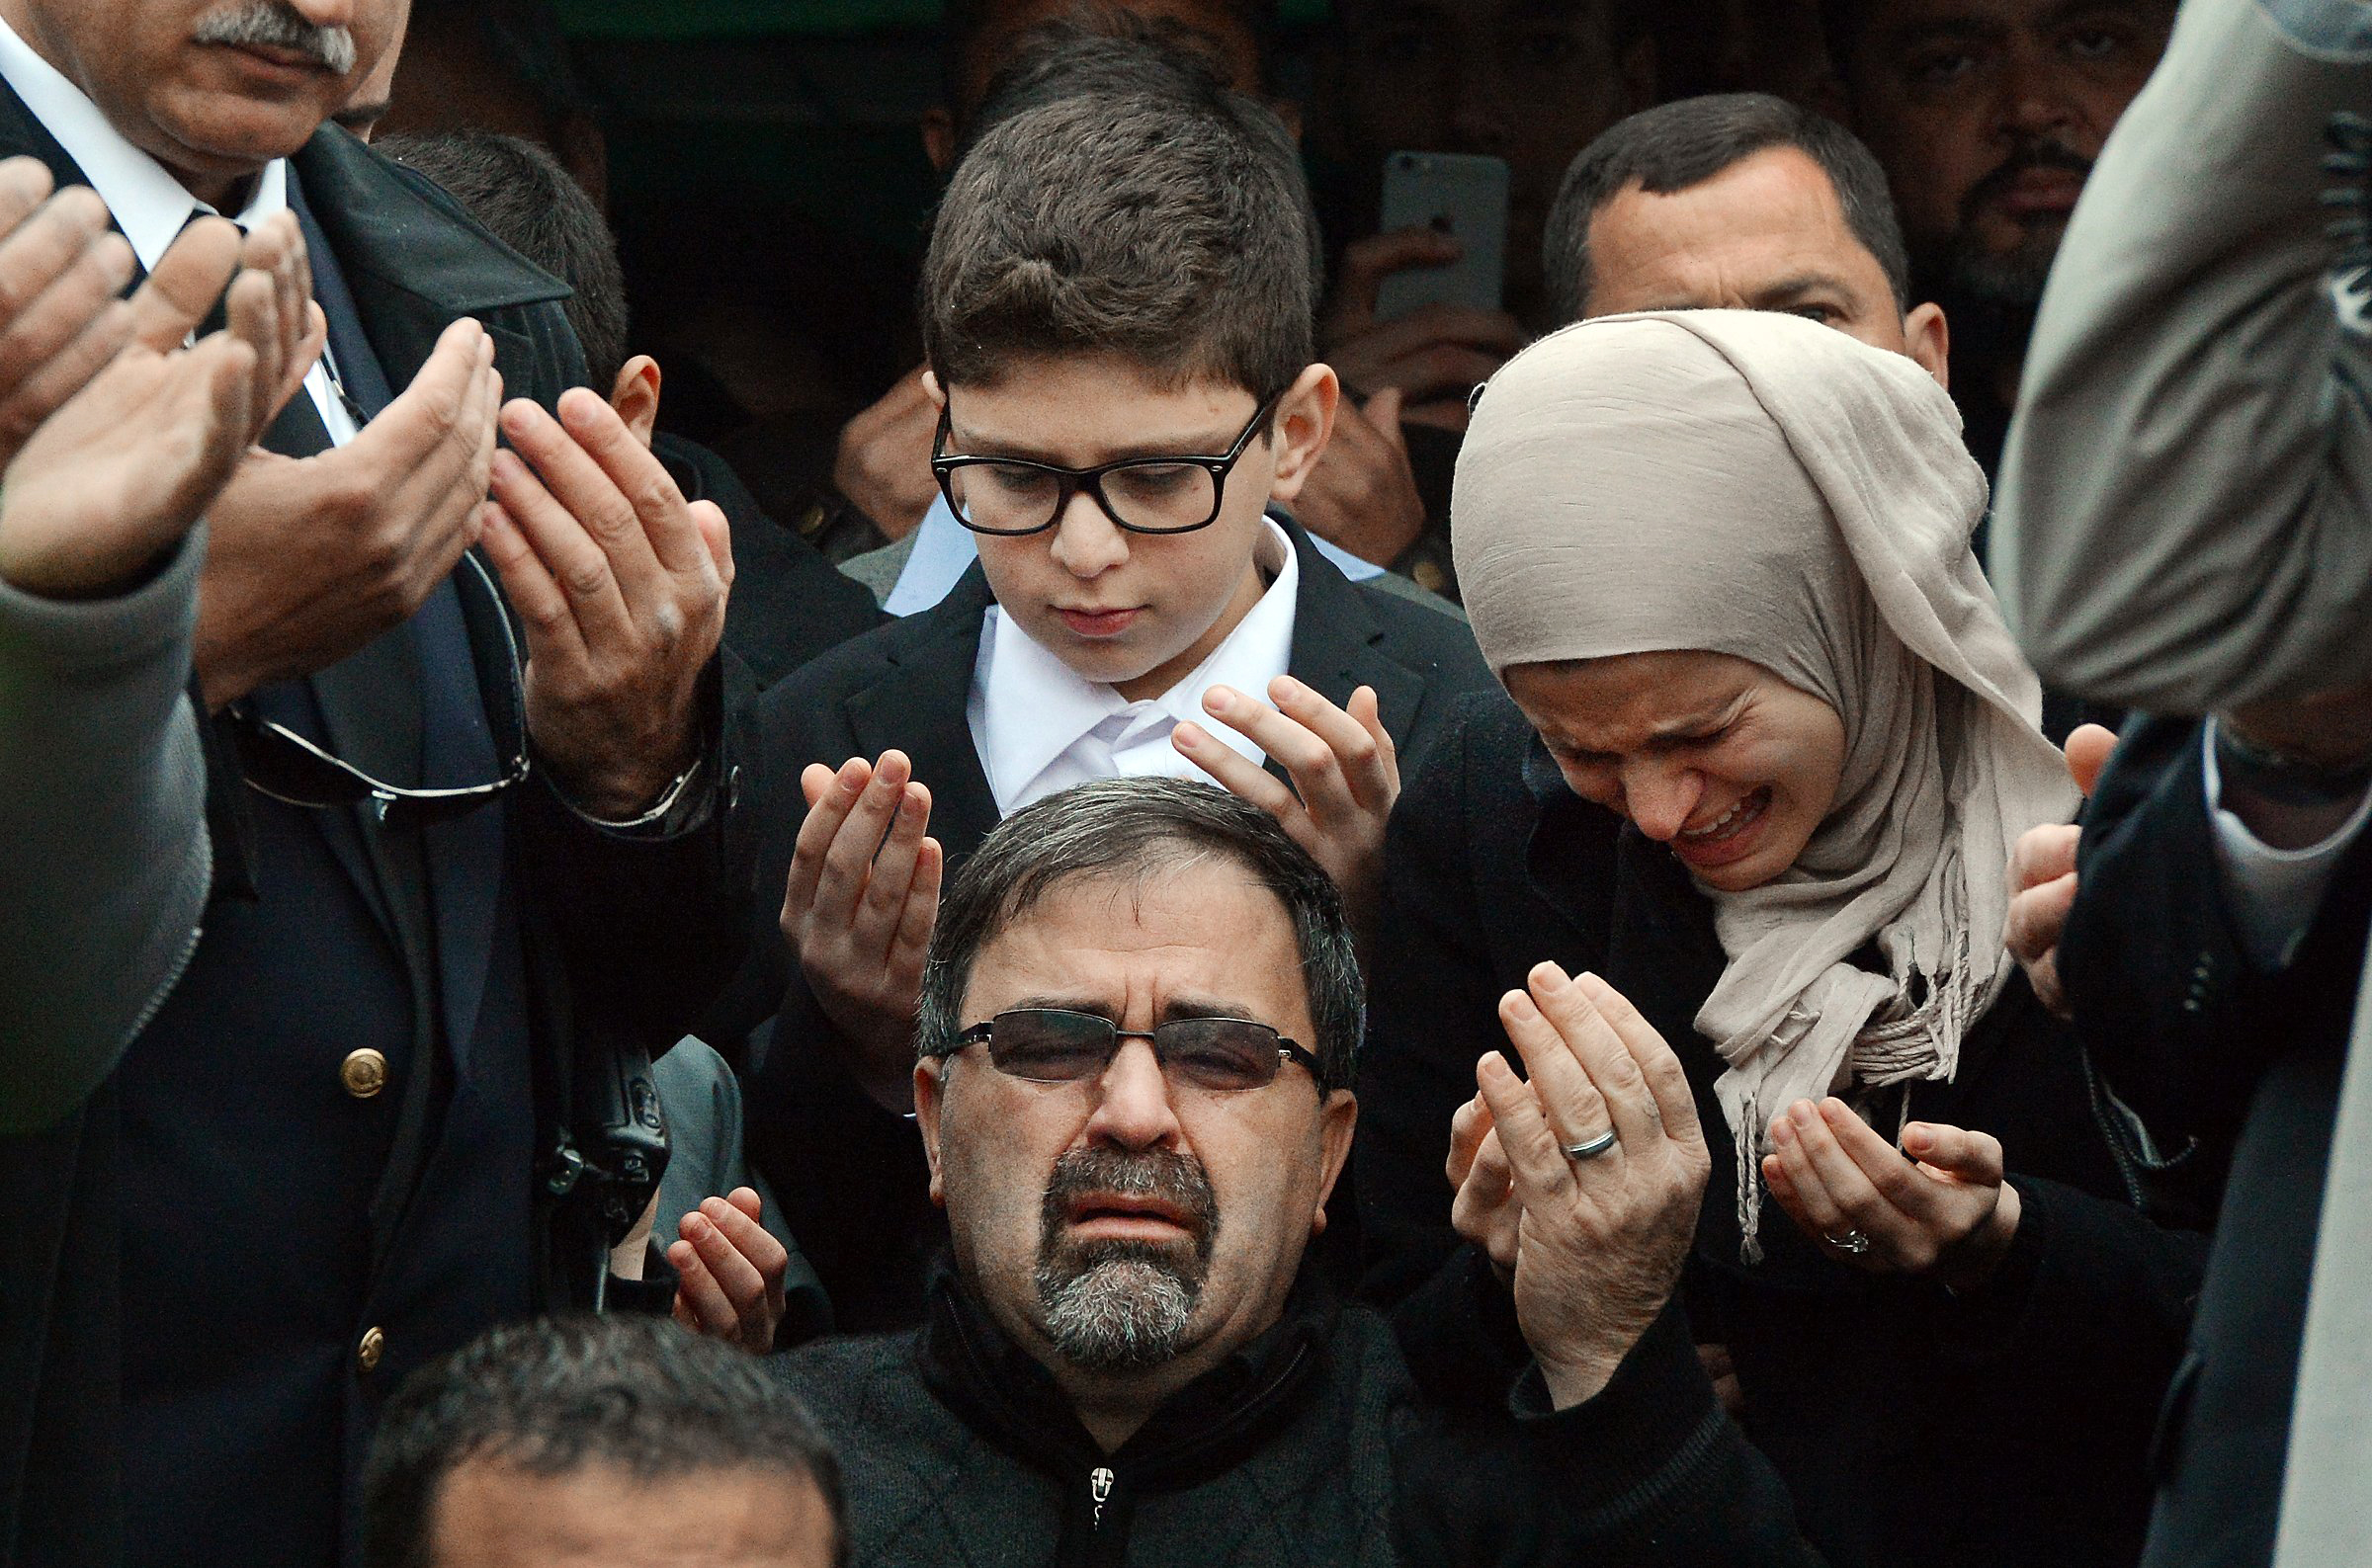 Namee Barakat, center, watches during funeral services for his son Deah Barakat in Wendell, N.C., on Feb. 12, 2015